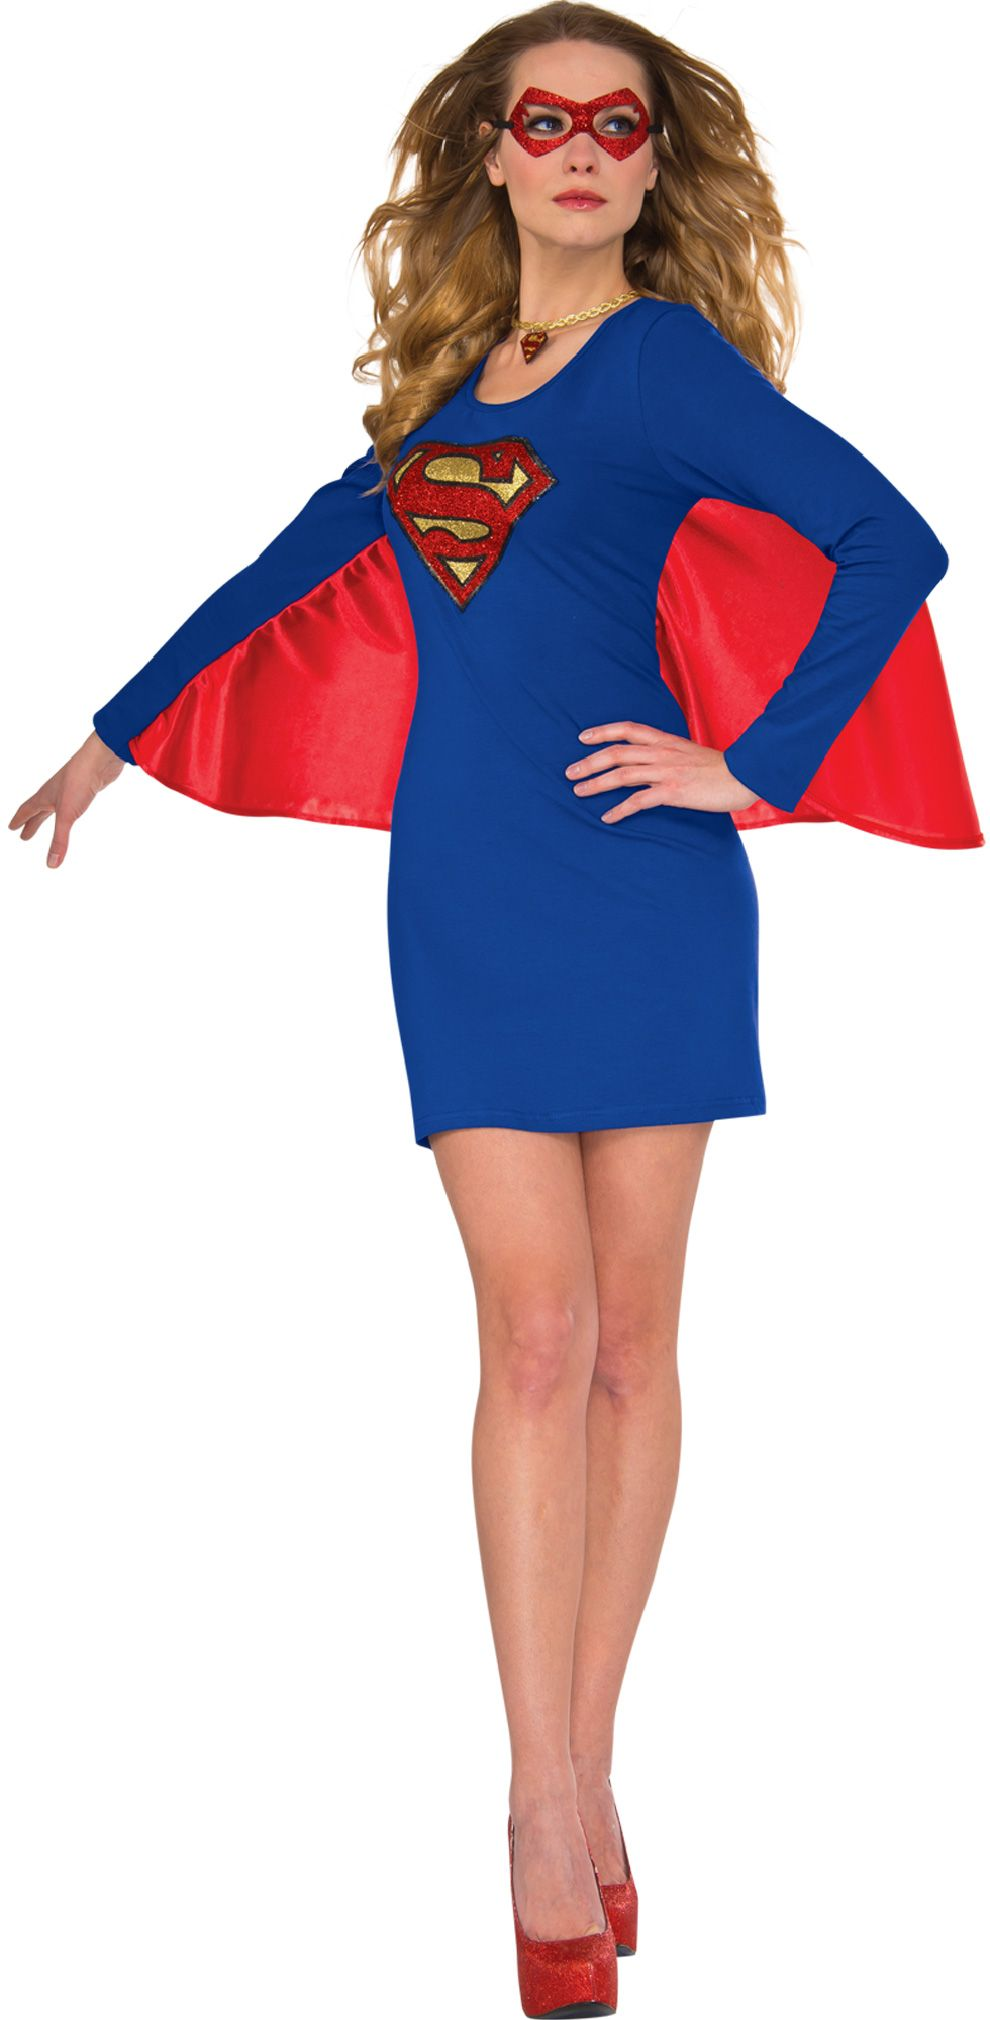 Create Your Own Look - Female Supergirl #2